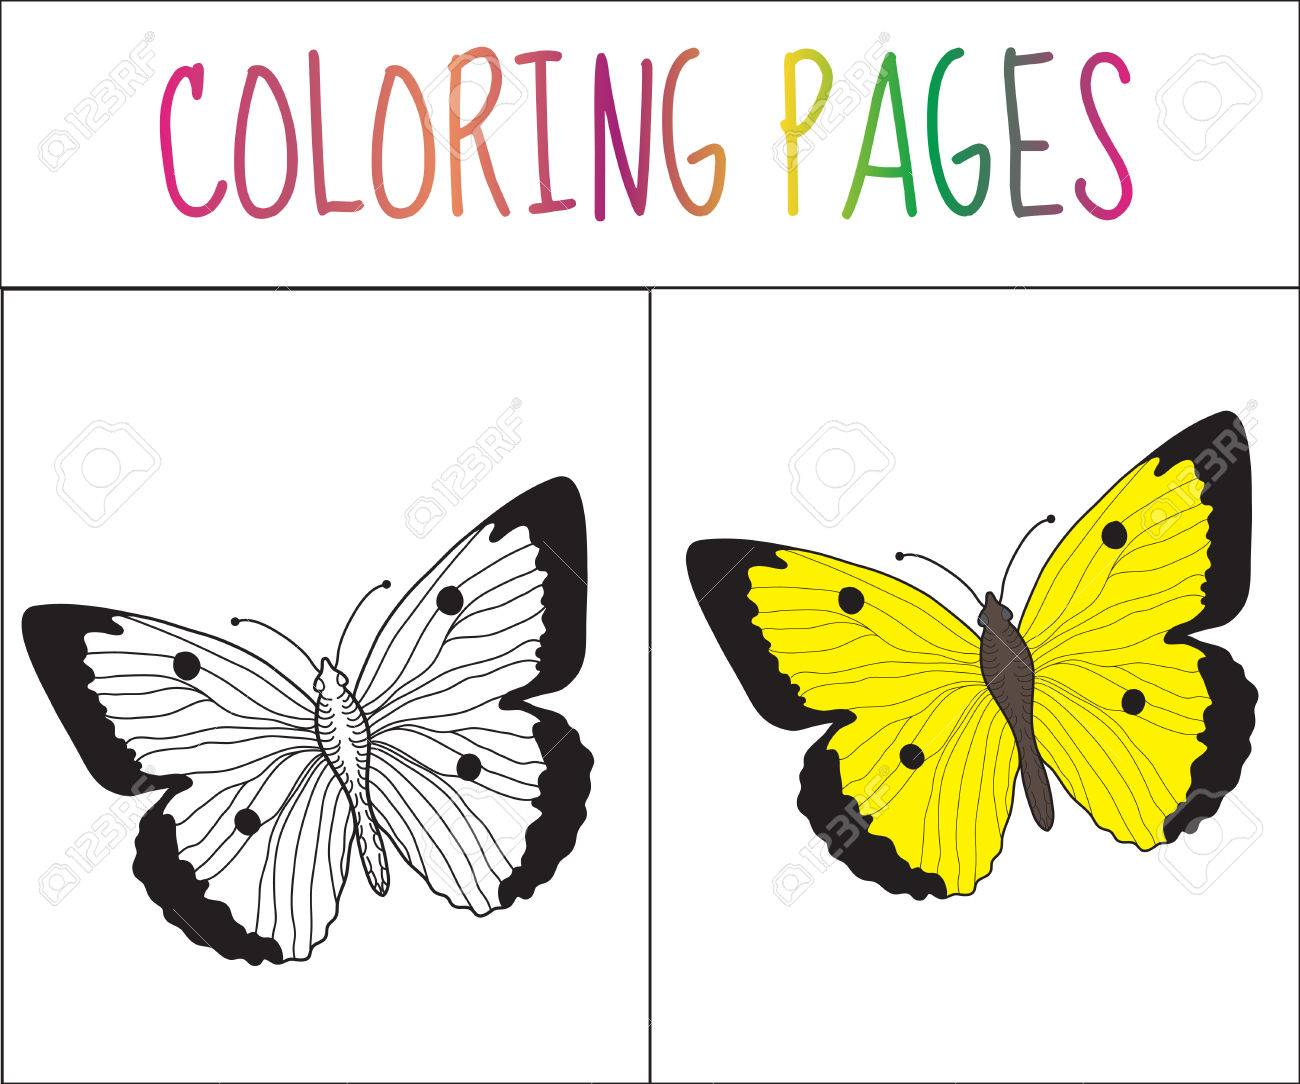 coloring book page butterfly sketch and color version coloring